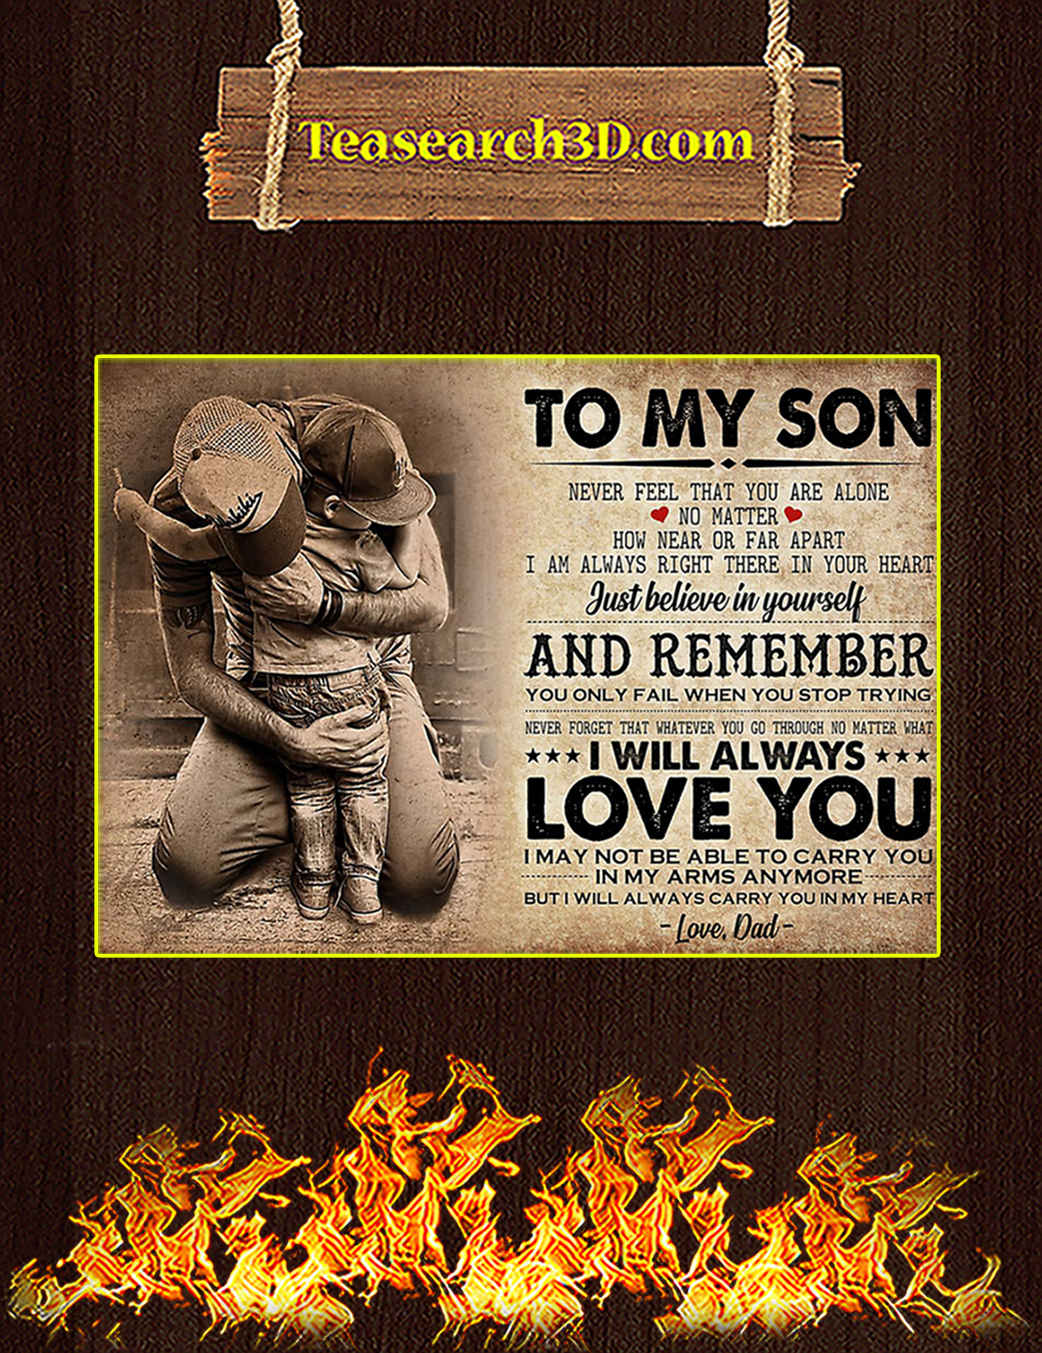 To my son dad never feel that you alone poster A1